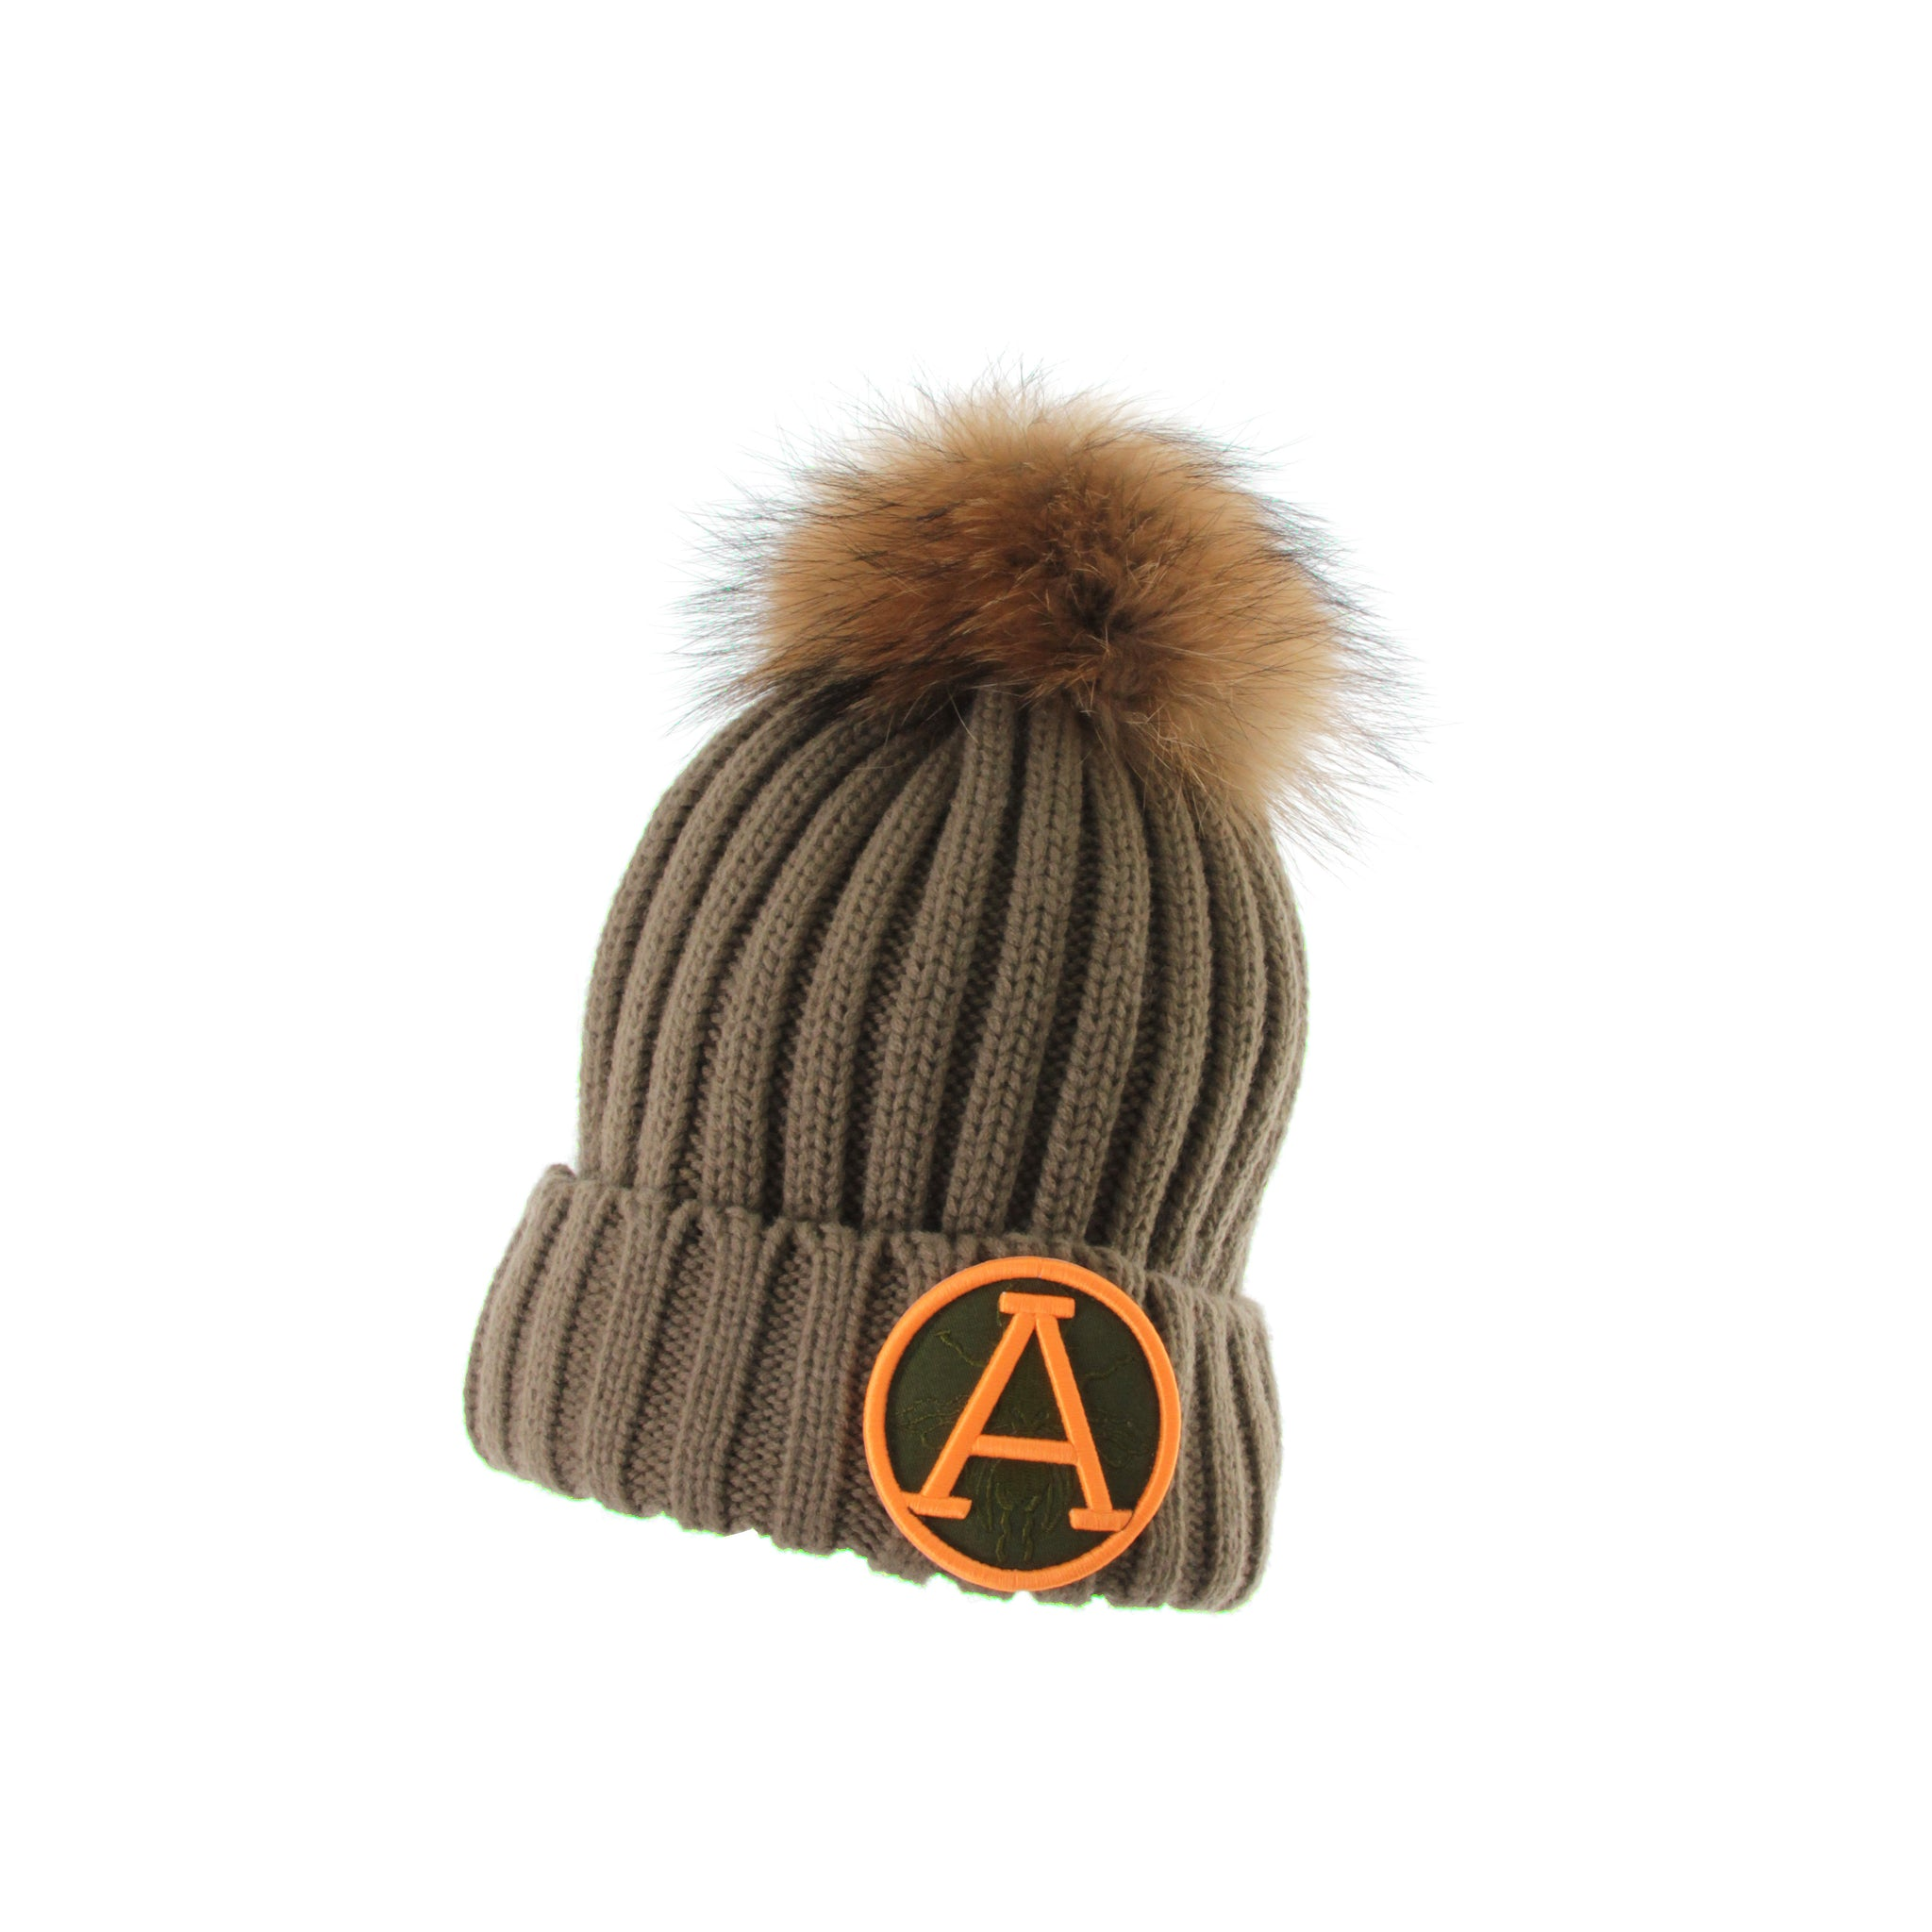 SALE! 50% OFF! ARCTIC ARMY FUR POM POM HAT KHAKI